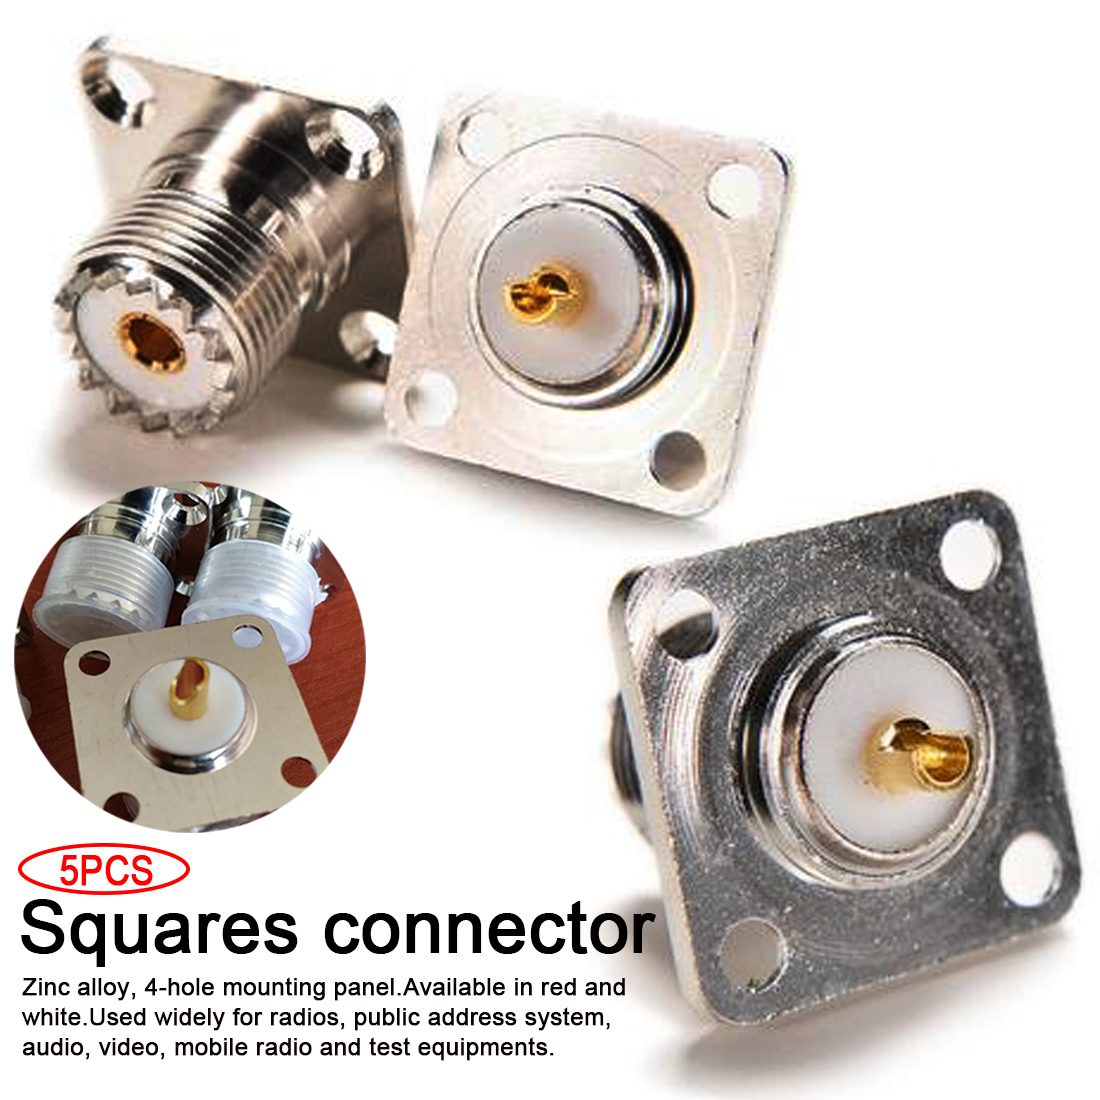 5pcs UHF squares socket Female coaxial connector Panel Chassis Mount Solder Cup RF Connector|Connectors| |  - title=